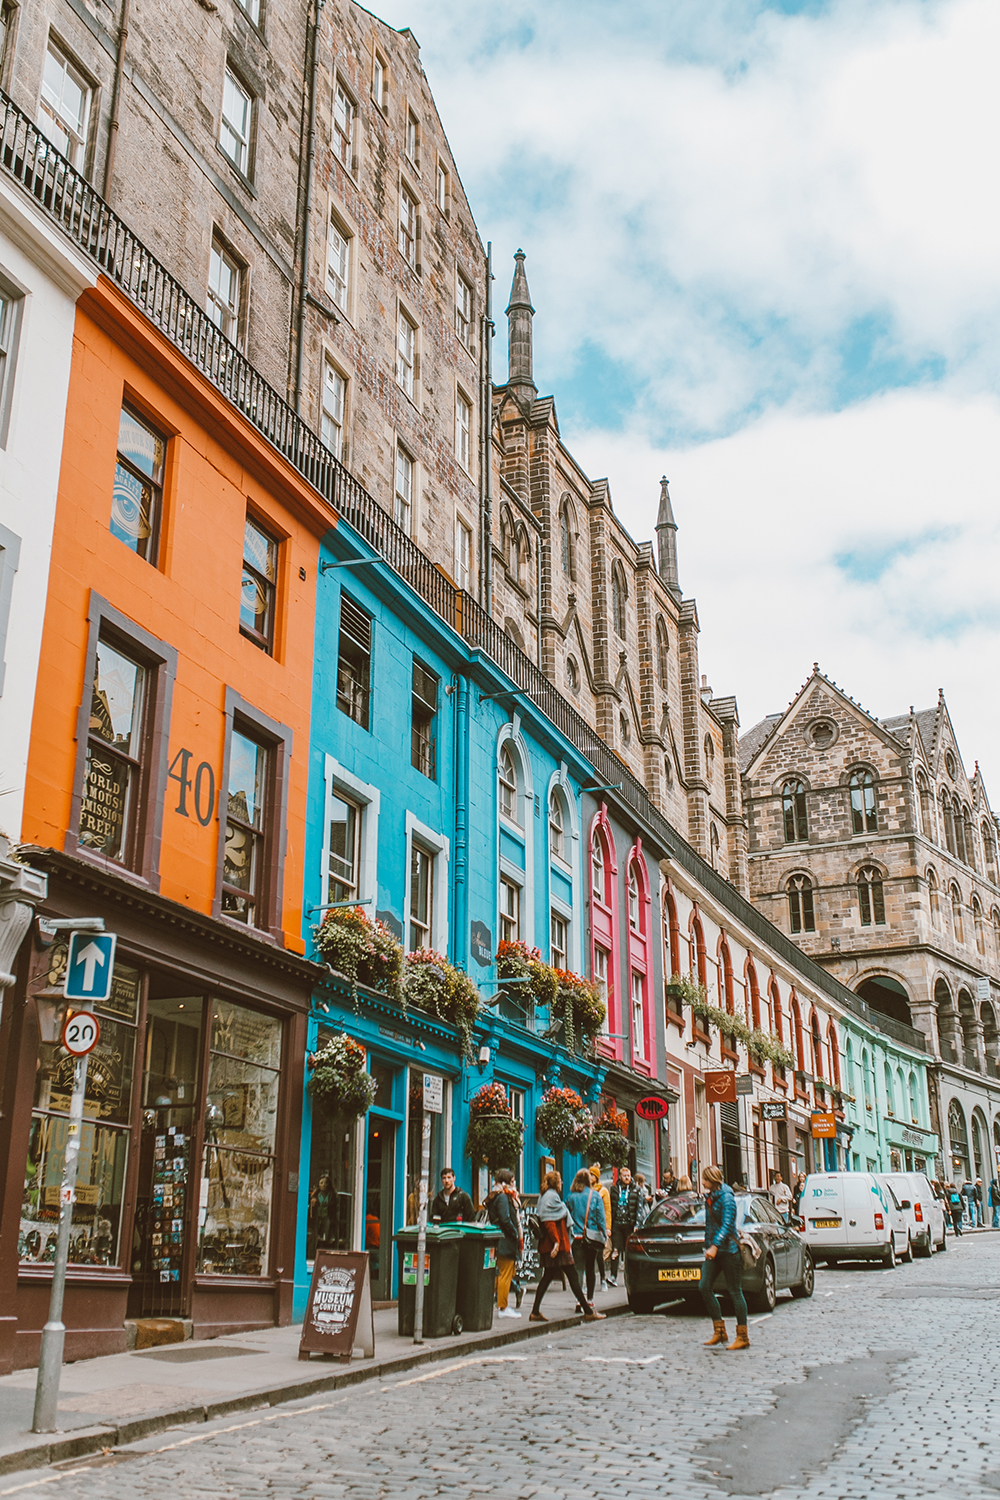 livvyland-blog-olivia-watson-things-to-do-edinburgh-scotland-day-trip-victorias-street-colorful-alleyway-2